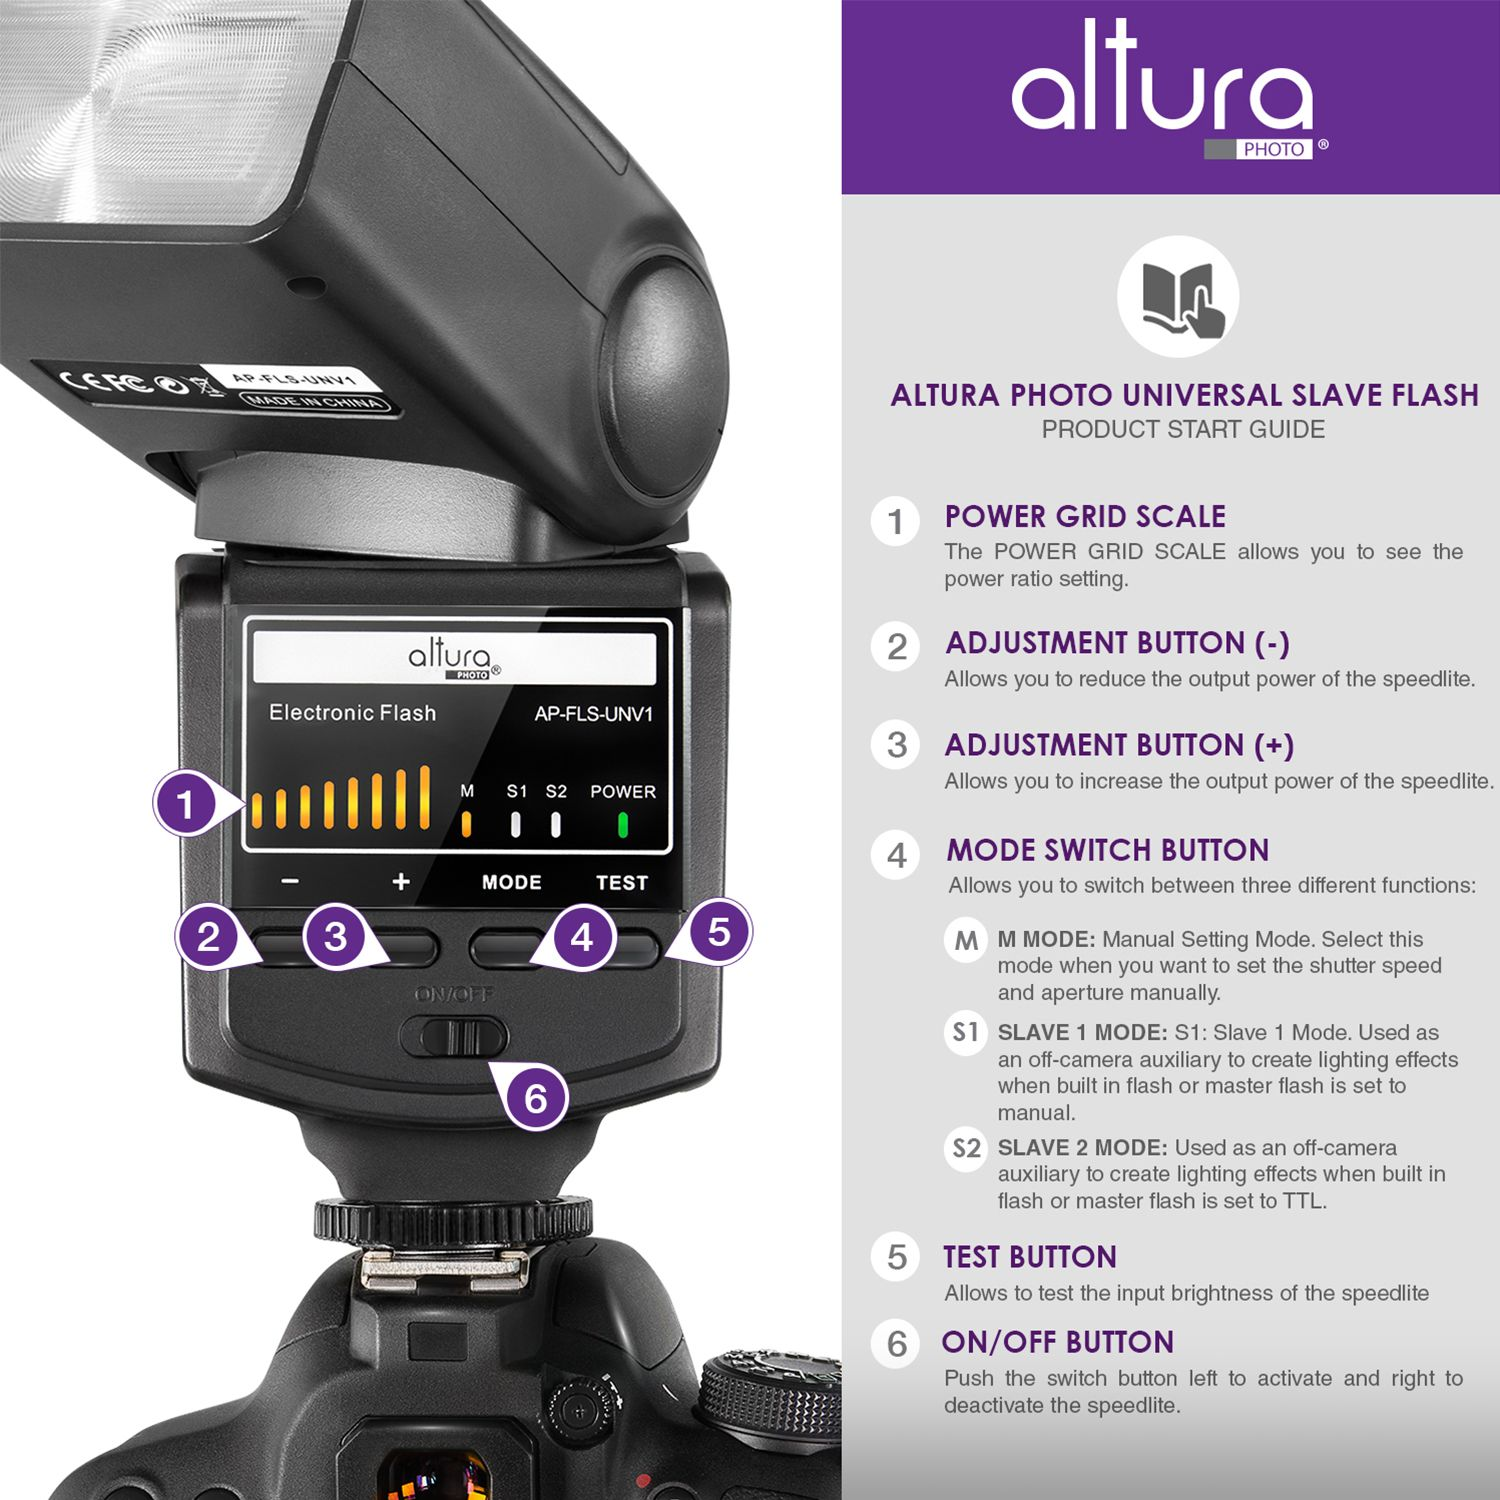 Universal Digital Ttl Flash For Dslr Cameras Altura Photo